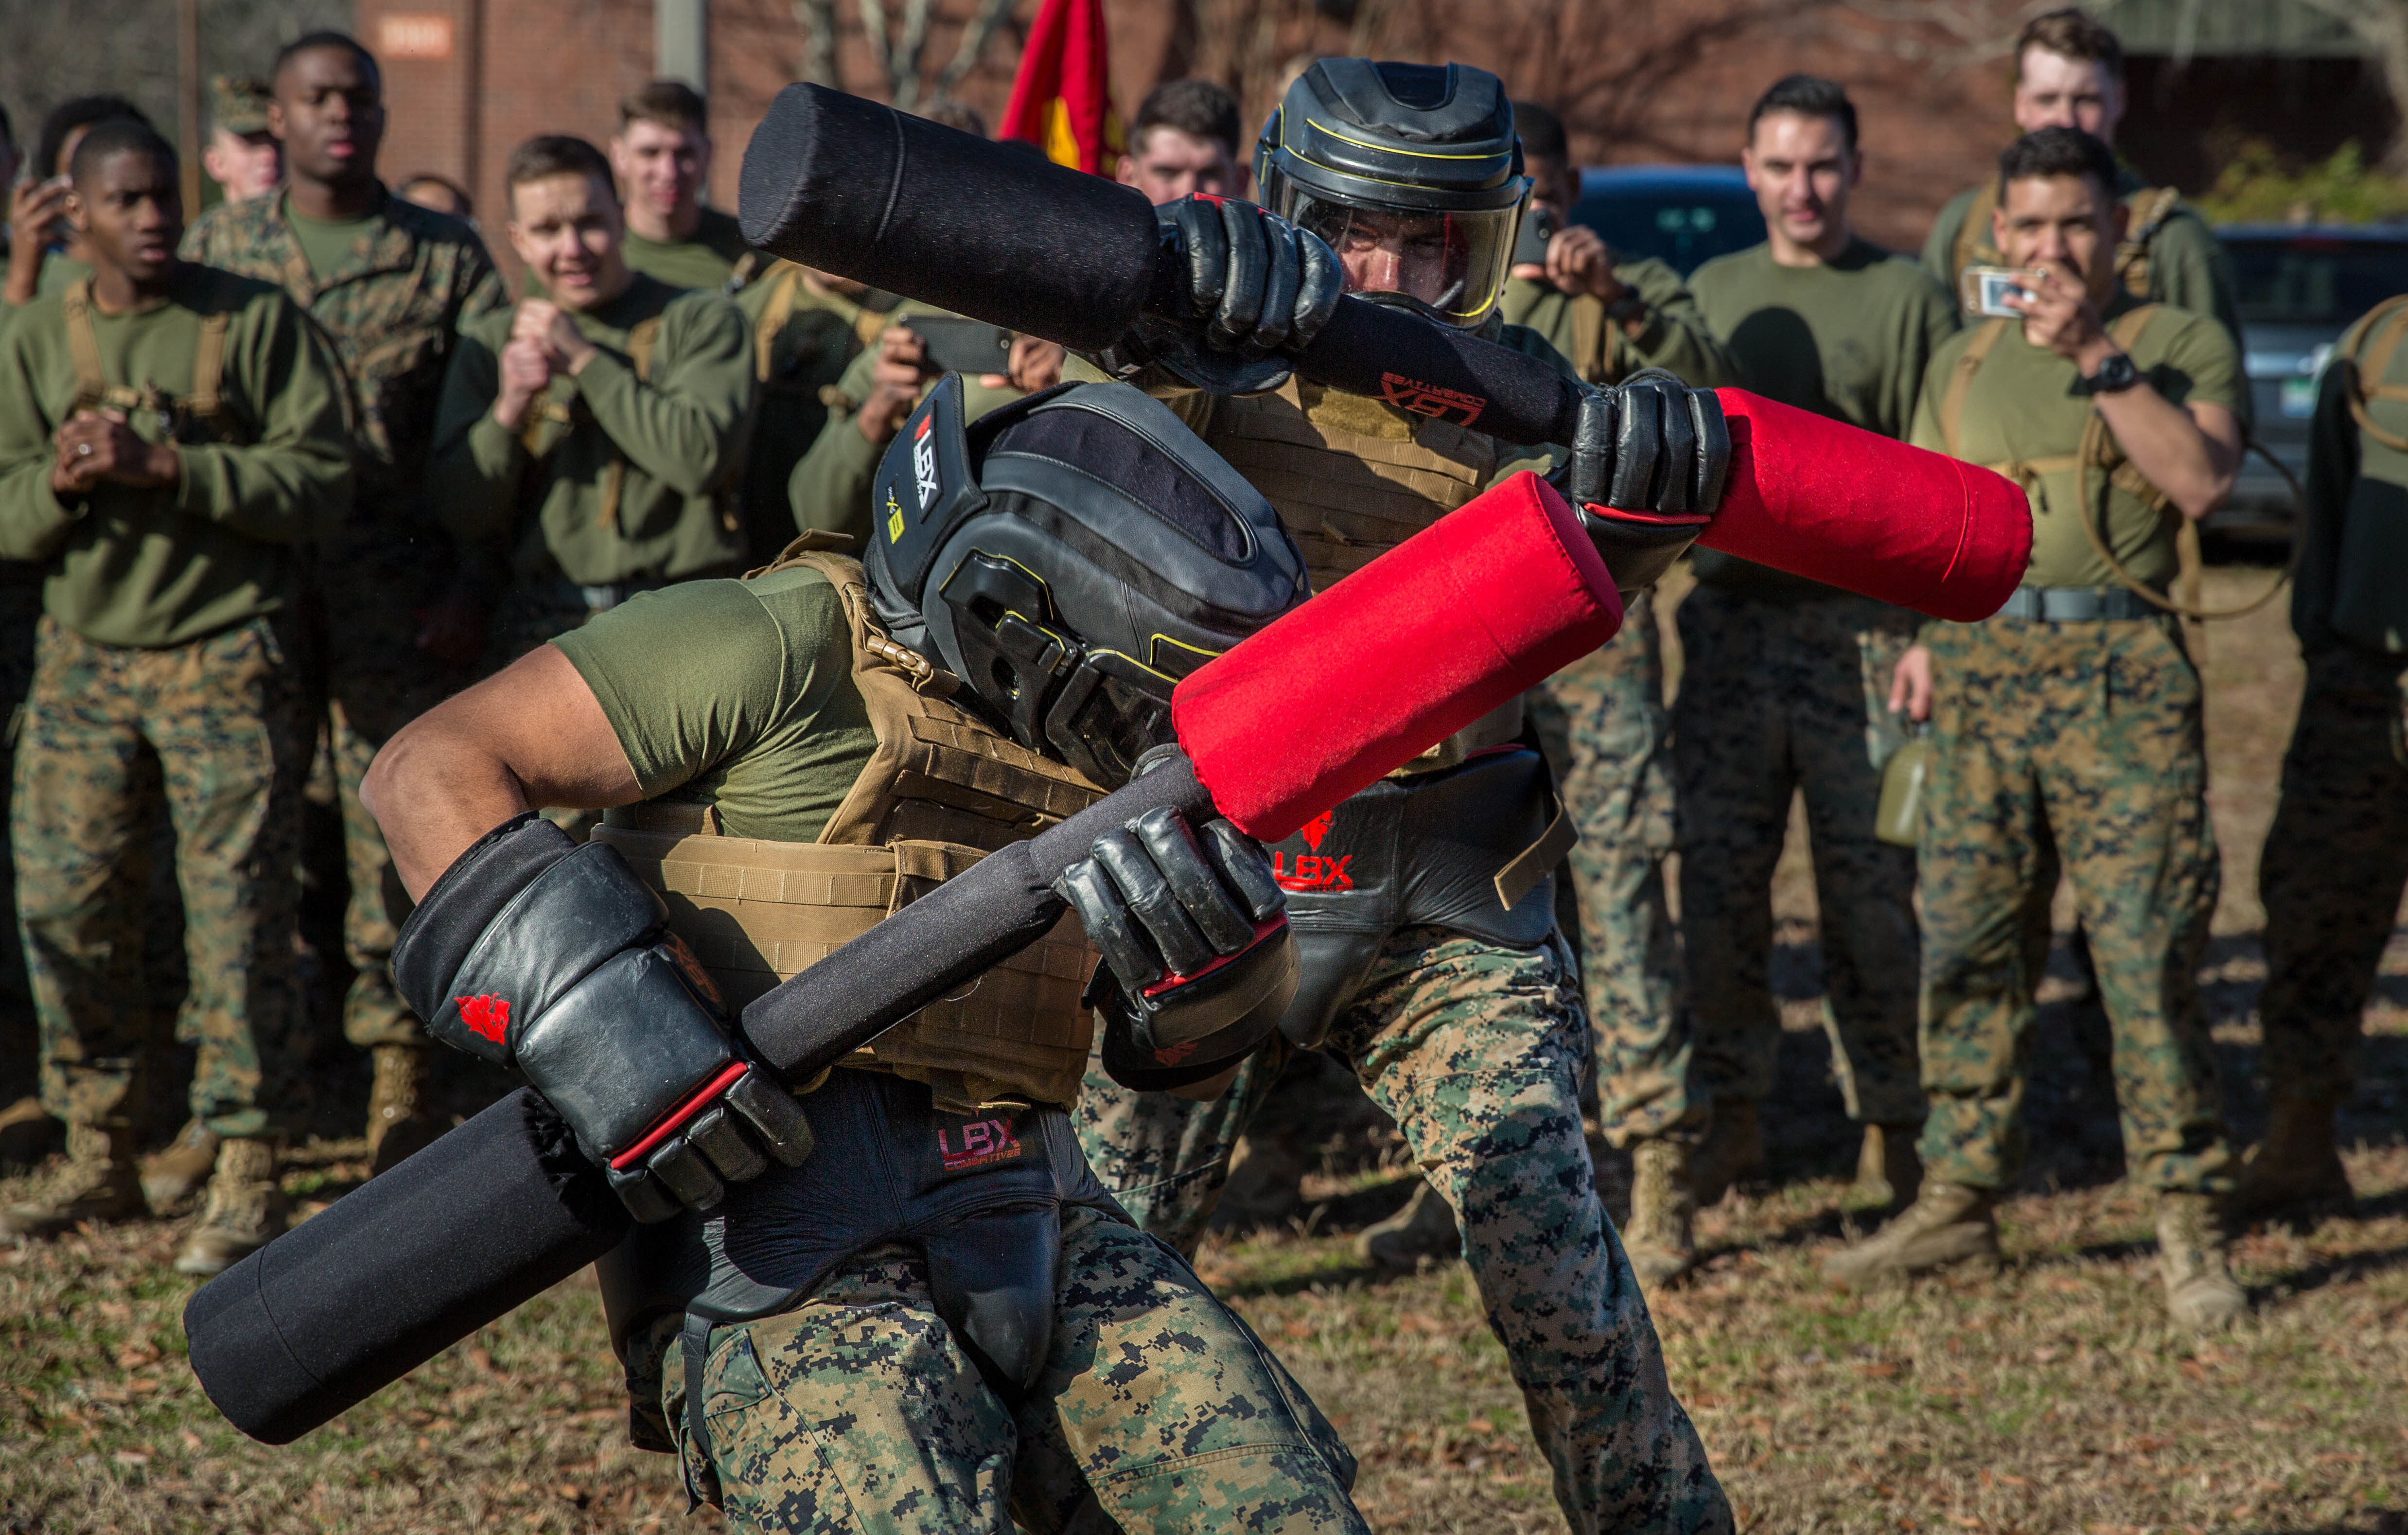 U.S. Marines with Marine Wing Communication Squadron (MWCS) 28 compete in a pugil stick match during the Spartan Cup competition on Marine Corps Air Station Cherry Point, N.C., Feb. 9, 2018. The Spartan Cup is an MWCS-28 event held semiannually to give the Marines a chance to compete against one another while building camaraderie and unit cohesion. (Cpl. Jonathan Wiederhold/Marines)